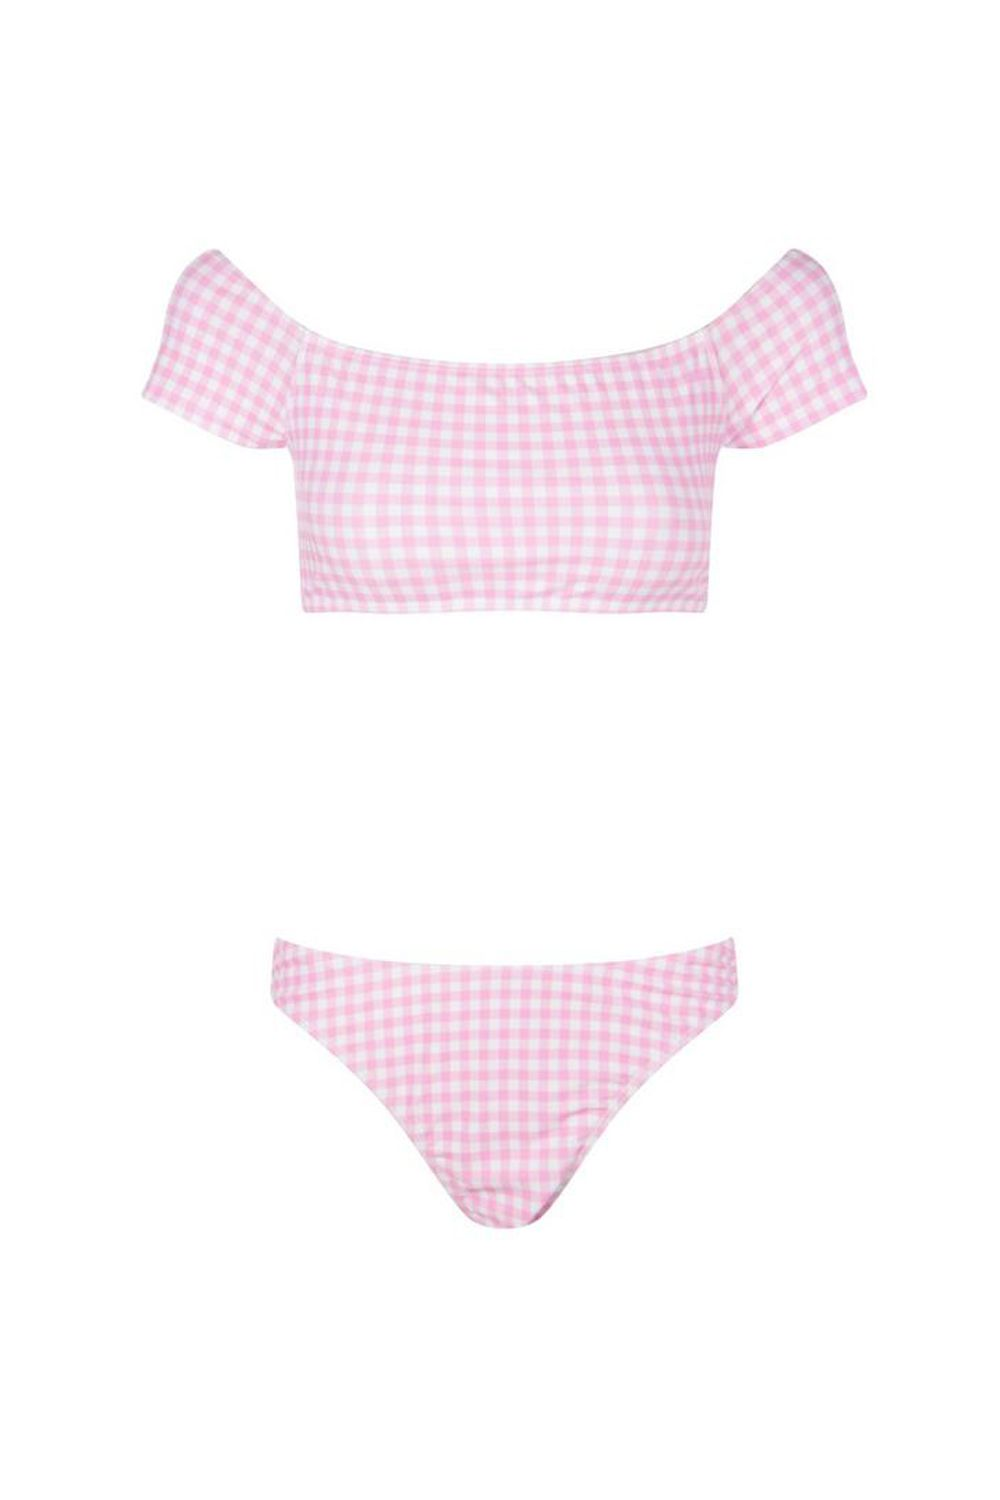 "<p>This little T-shirt swim silhouette is It this summer, and you can't beat the price (or color) of this one. </p><p>$35, <a href=""http://us.boohoo.com/hawaii-gingham-bardot-high-leg-bikini/SZZ90631.html?color=155"" target=""_blank"" data-tracking-id=""recirc-text-link"">boohoo.com</a>.</p>"